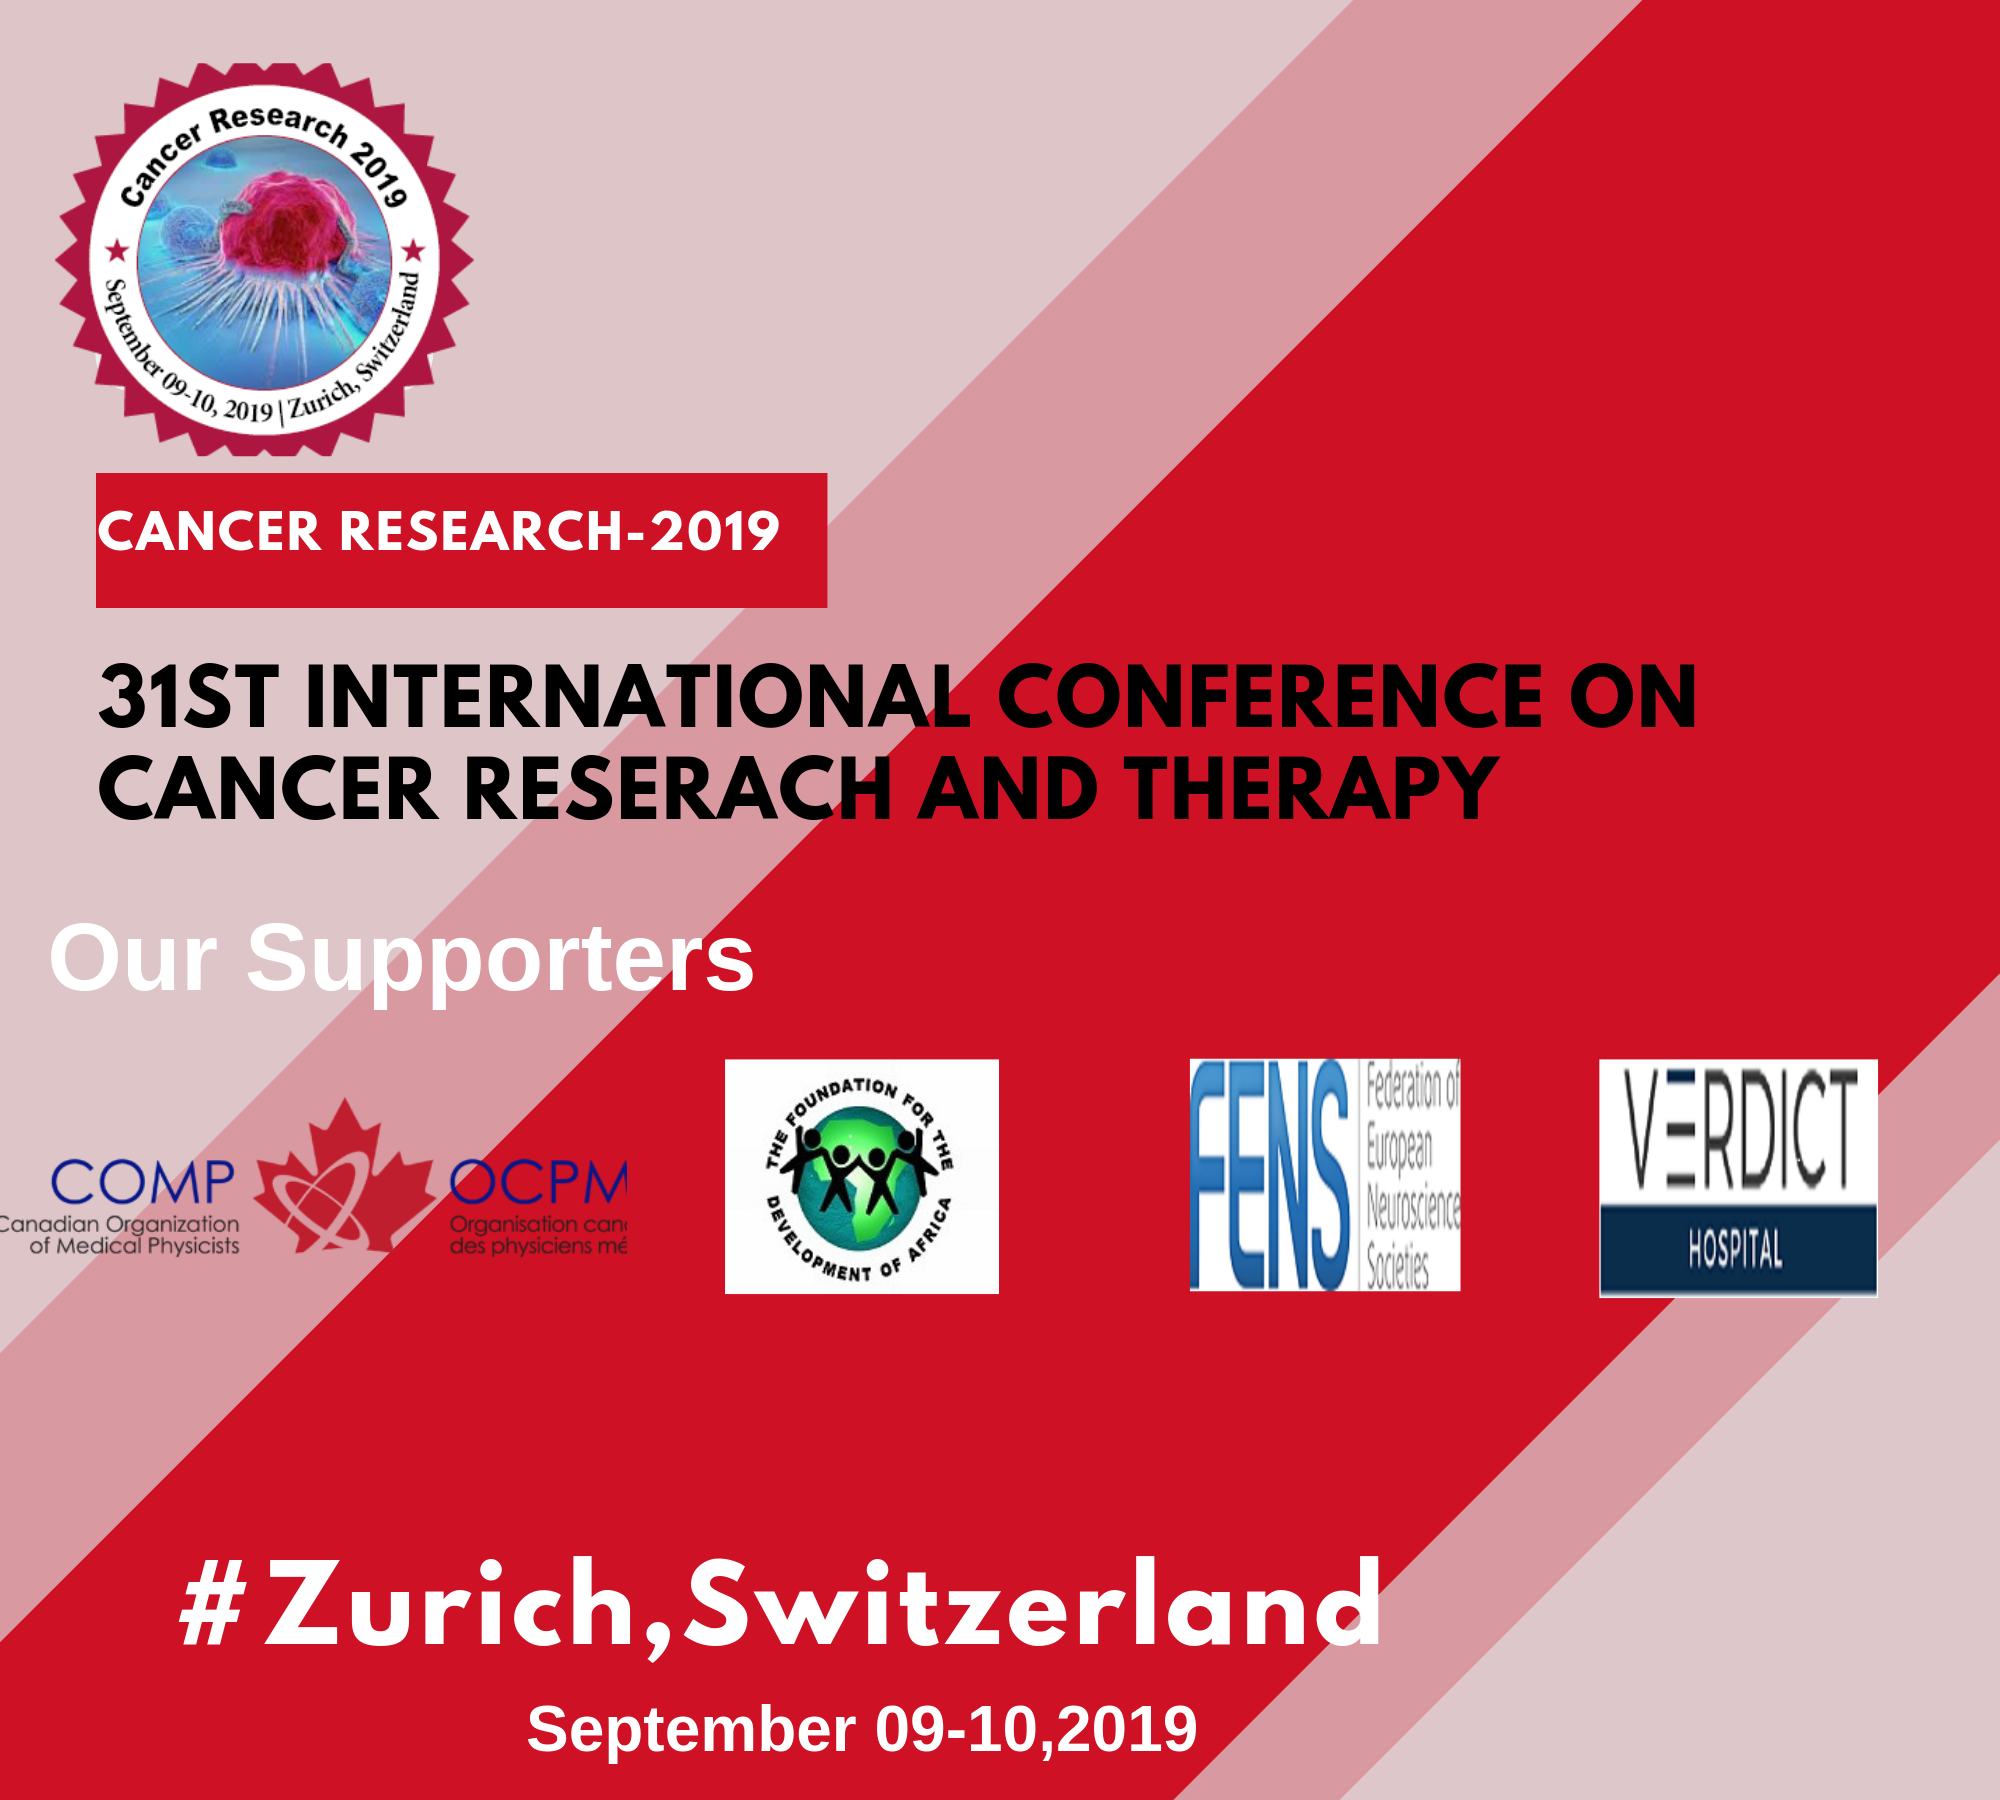 31st International Conference on Cancer Research Therapy